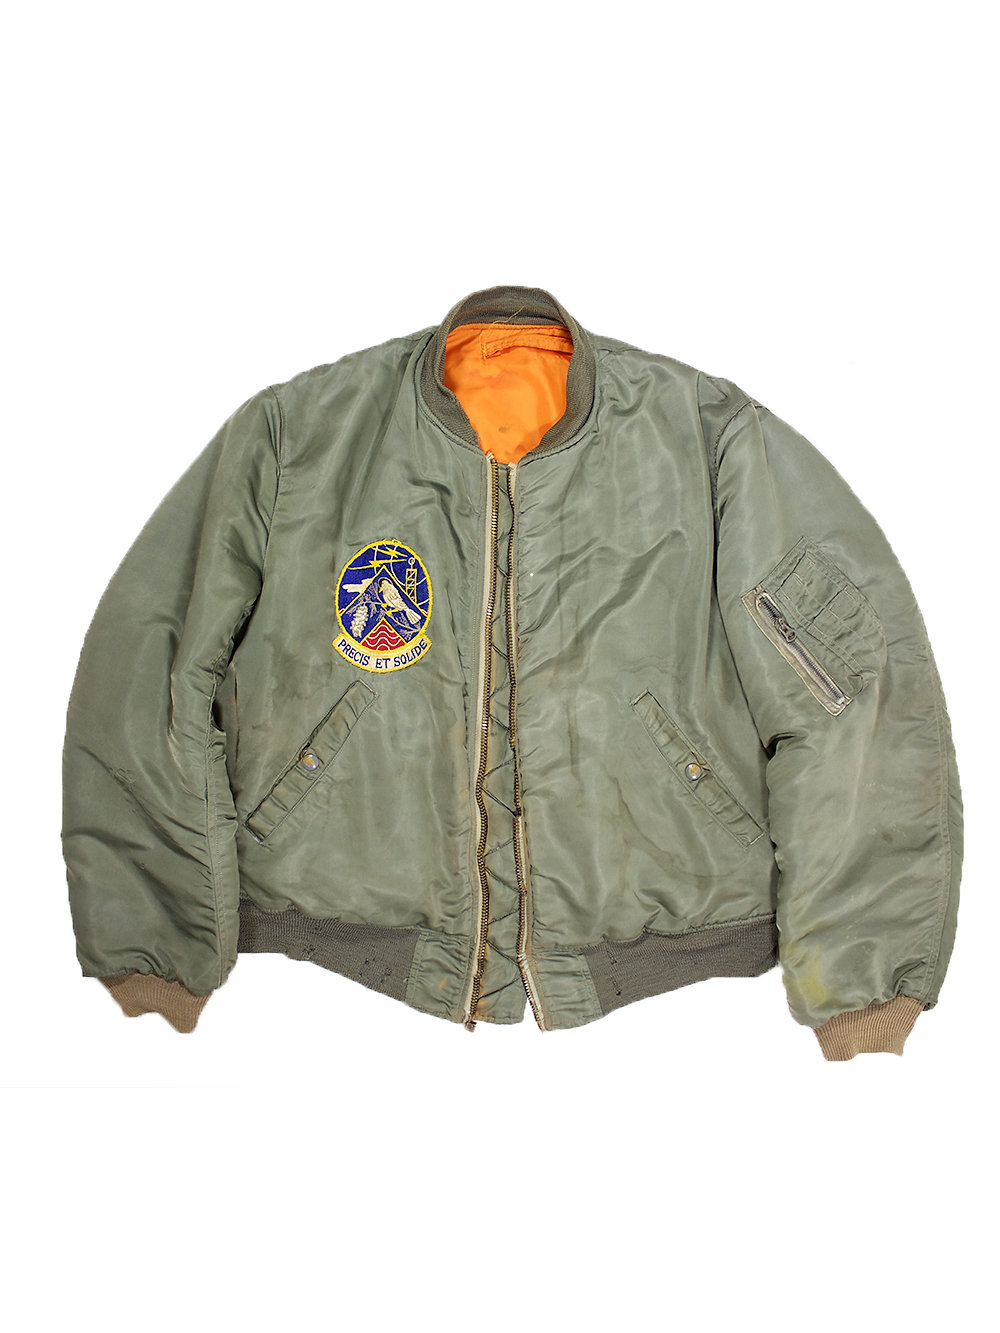 Broadway & Sons | Vintage Clothing & Military Surplus Online ...